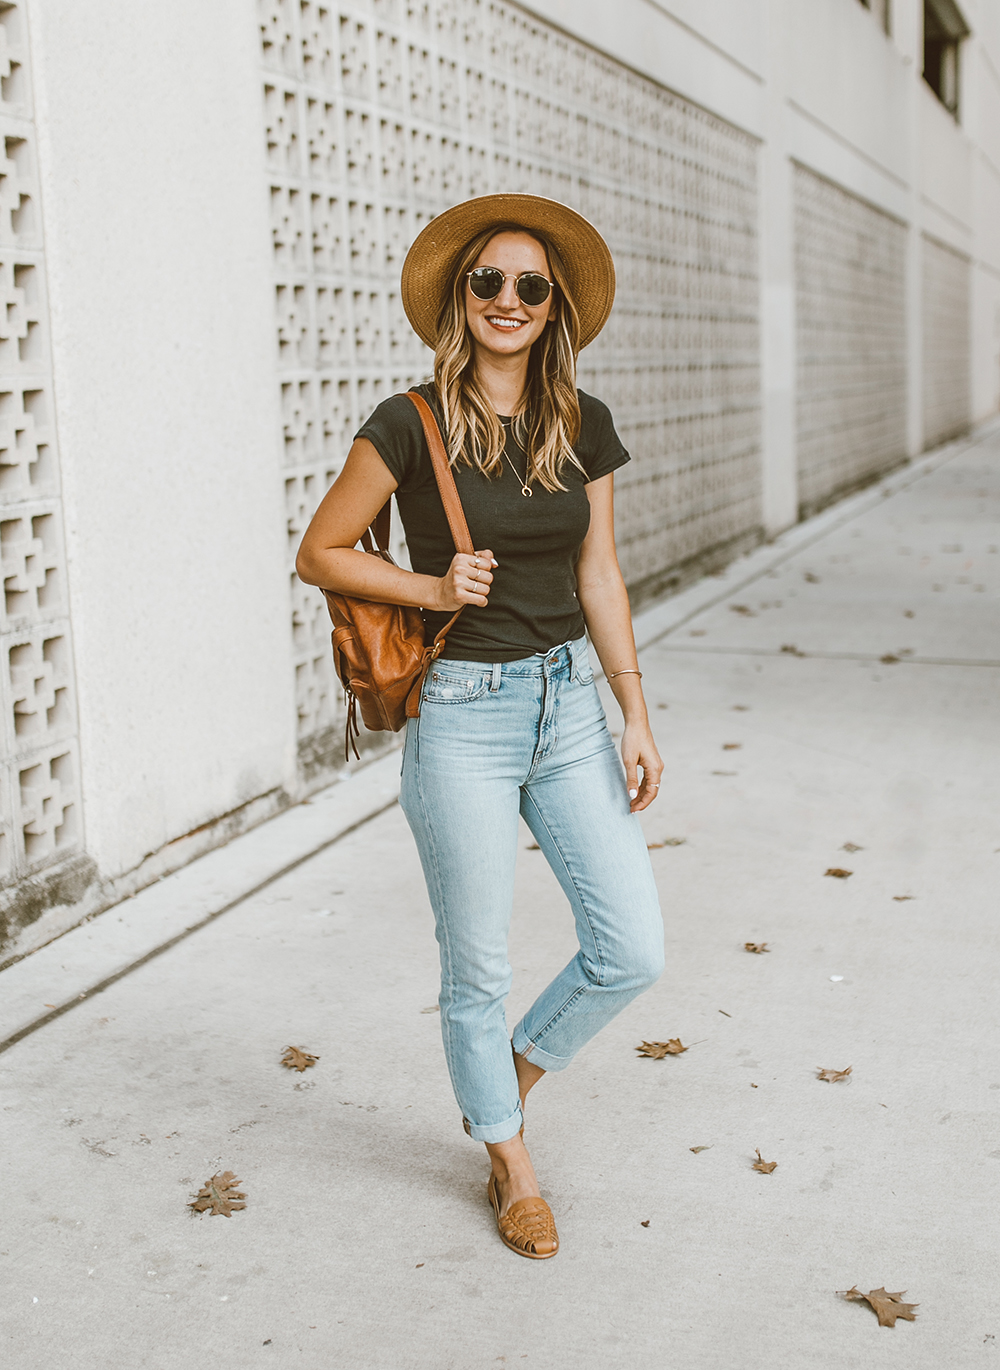 livvyland-blog-olivia-watson-austin-texas-fashion-style-blog-nisolo-ecuador-huarche-sandals-almond-tee-jeans-outfit-5